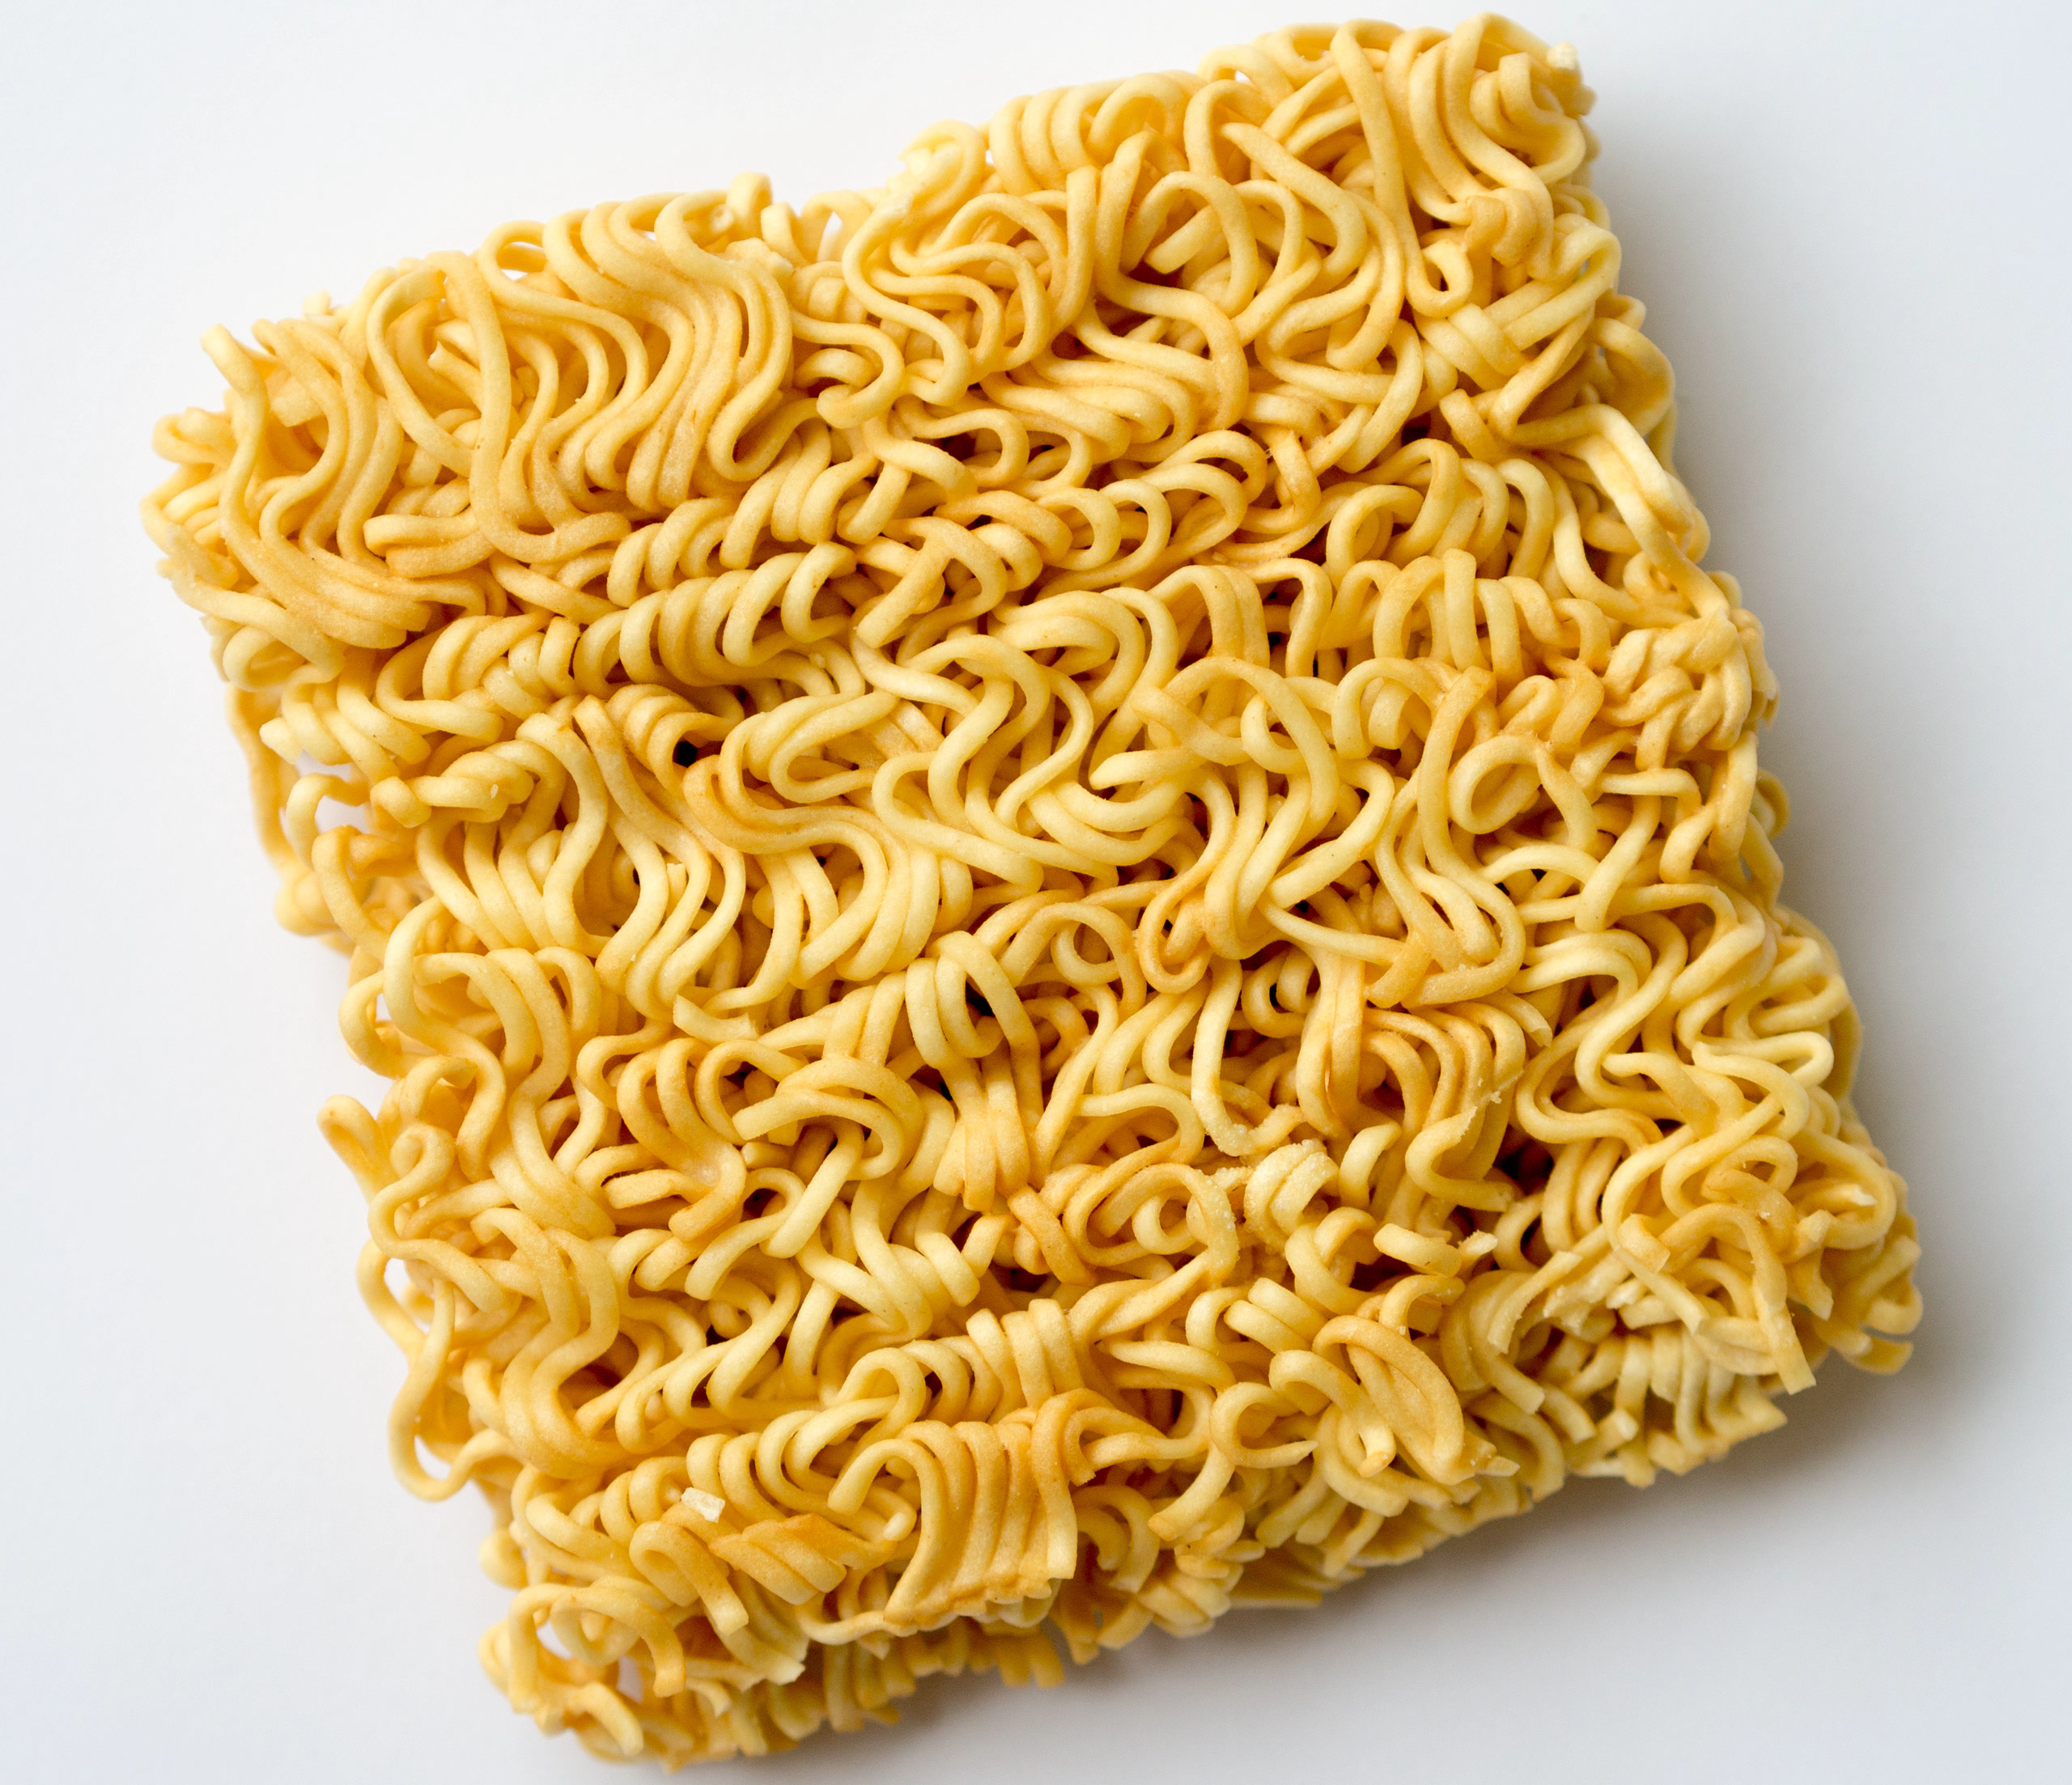 Оригинал: https://commons.wikimedia.org/wiki/File:Mama_instant_noodle_block.jpg